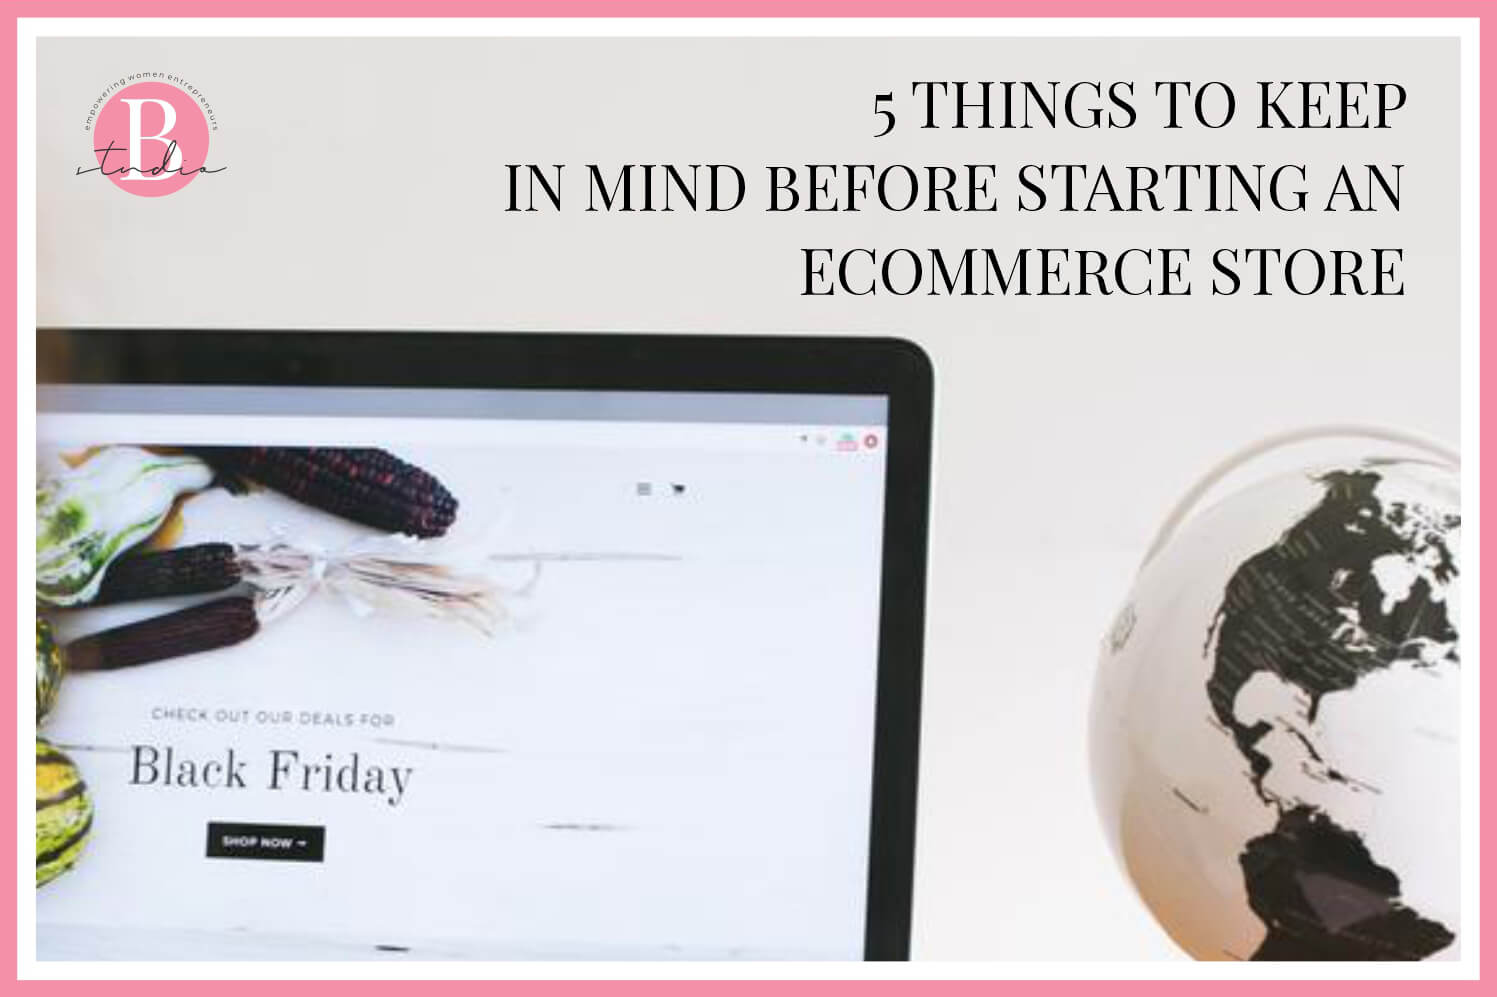 5 Things to Keep in Mind Before Starting an eCommerce Store img